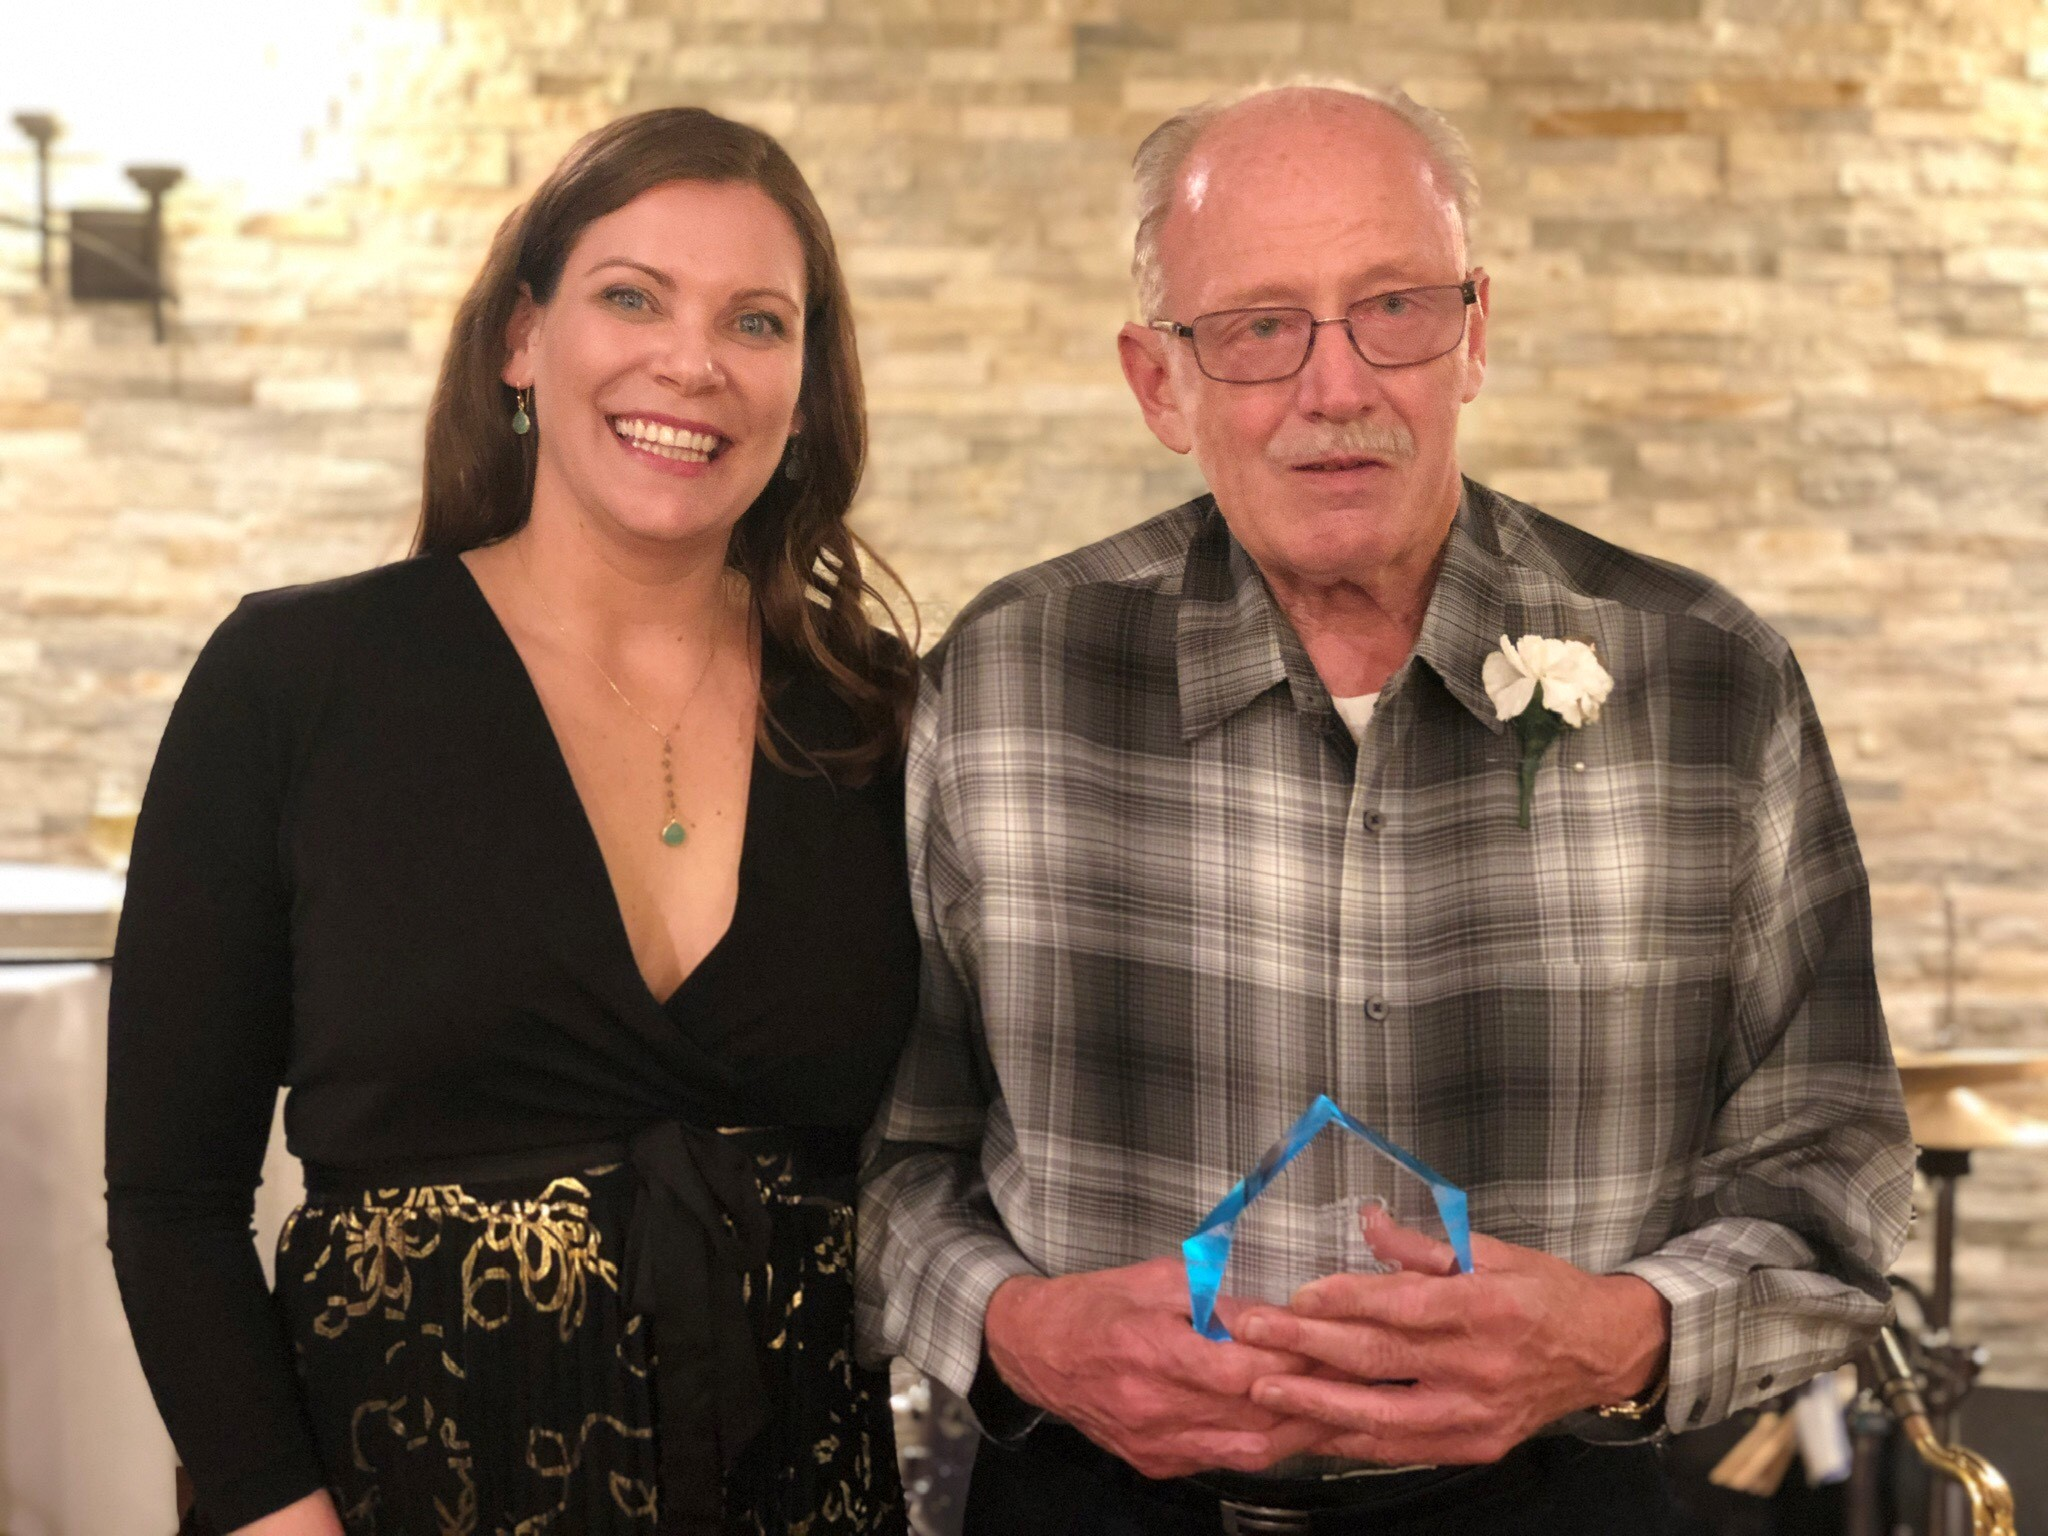 This year, we're proud to honor Rick Fiske with a Lifetime Achievement award. Since 1981, Rick has served Blue Island West Side Little League and the Untouchables as a volunteer coach, league administrator, and fundraiser, and as a role model to generations of young men from in and around Blue Island. Rick was never just a coach. He used the games of baseball and football to teach his athletes about true sportsmanship and fair play in the game of life, and to instill the importance of being a part of something larger – a team – a community. Now while he's officially retired from his positions with little league and the Untouchables, I don't think you'll find him straying too far from the fields where he spent so many sunny Saturdays giving his all to his teams. All he asks is to have games to attend, community members stepping up to help lead the programs and keep them moving forward – it's not a small request, as Mr. Fiske leaves behind some pretty large sneakers to fill.